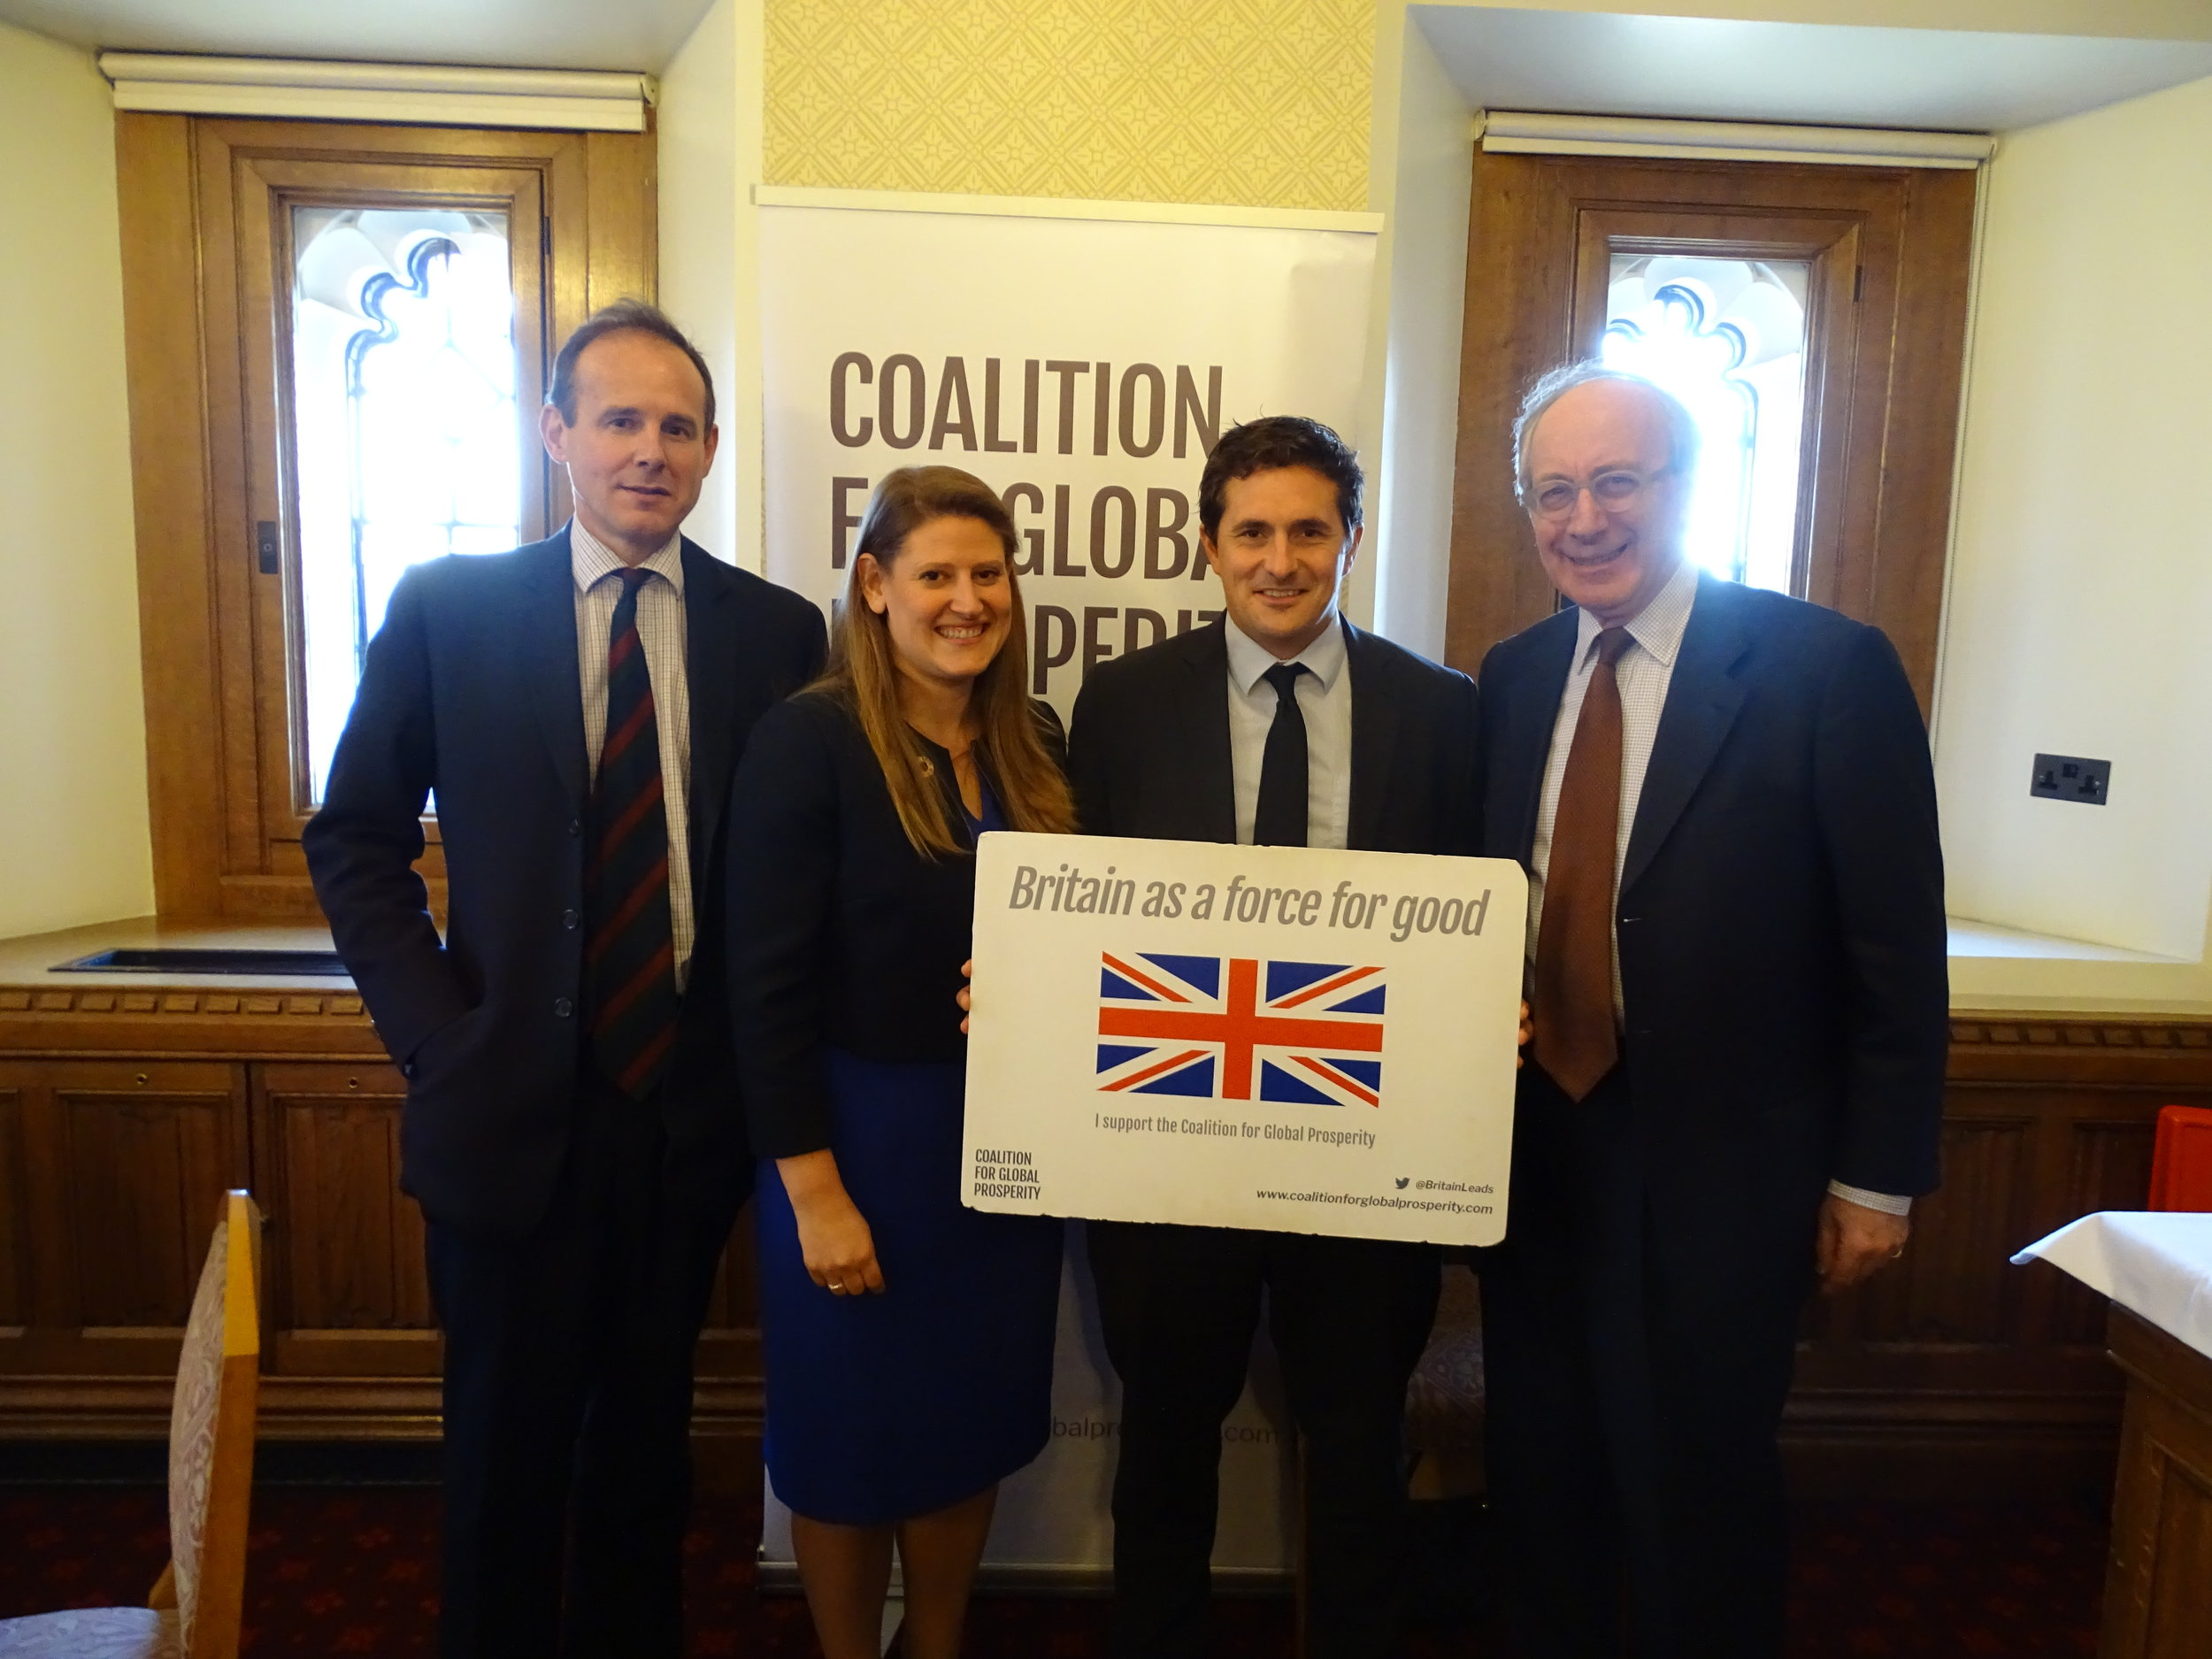 Major General James Cowan (CEO, The Halo Trust), Theo Clarke (CEO, The Coalition for Global Prosperity), Johnny Mercer MP, and The Rt Hon Sir Malcolm Rifkind QC